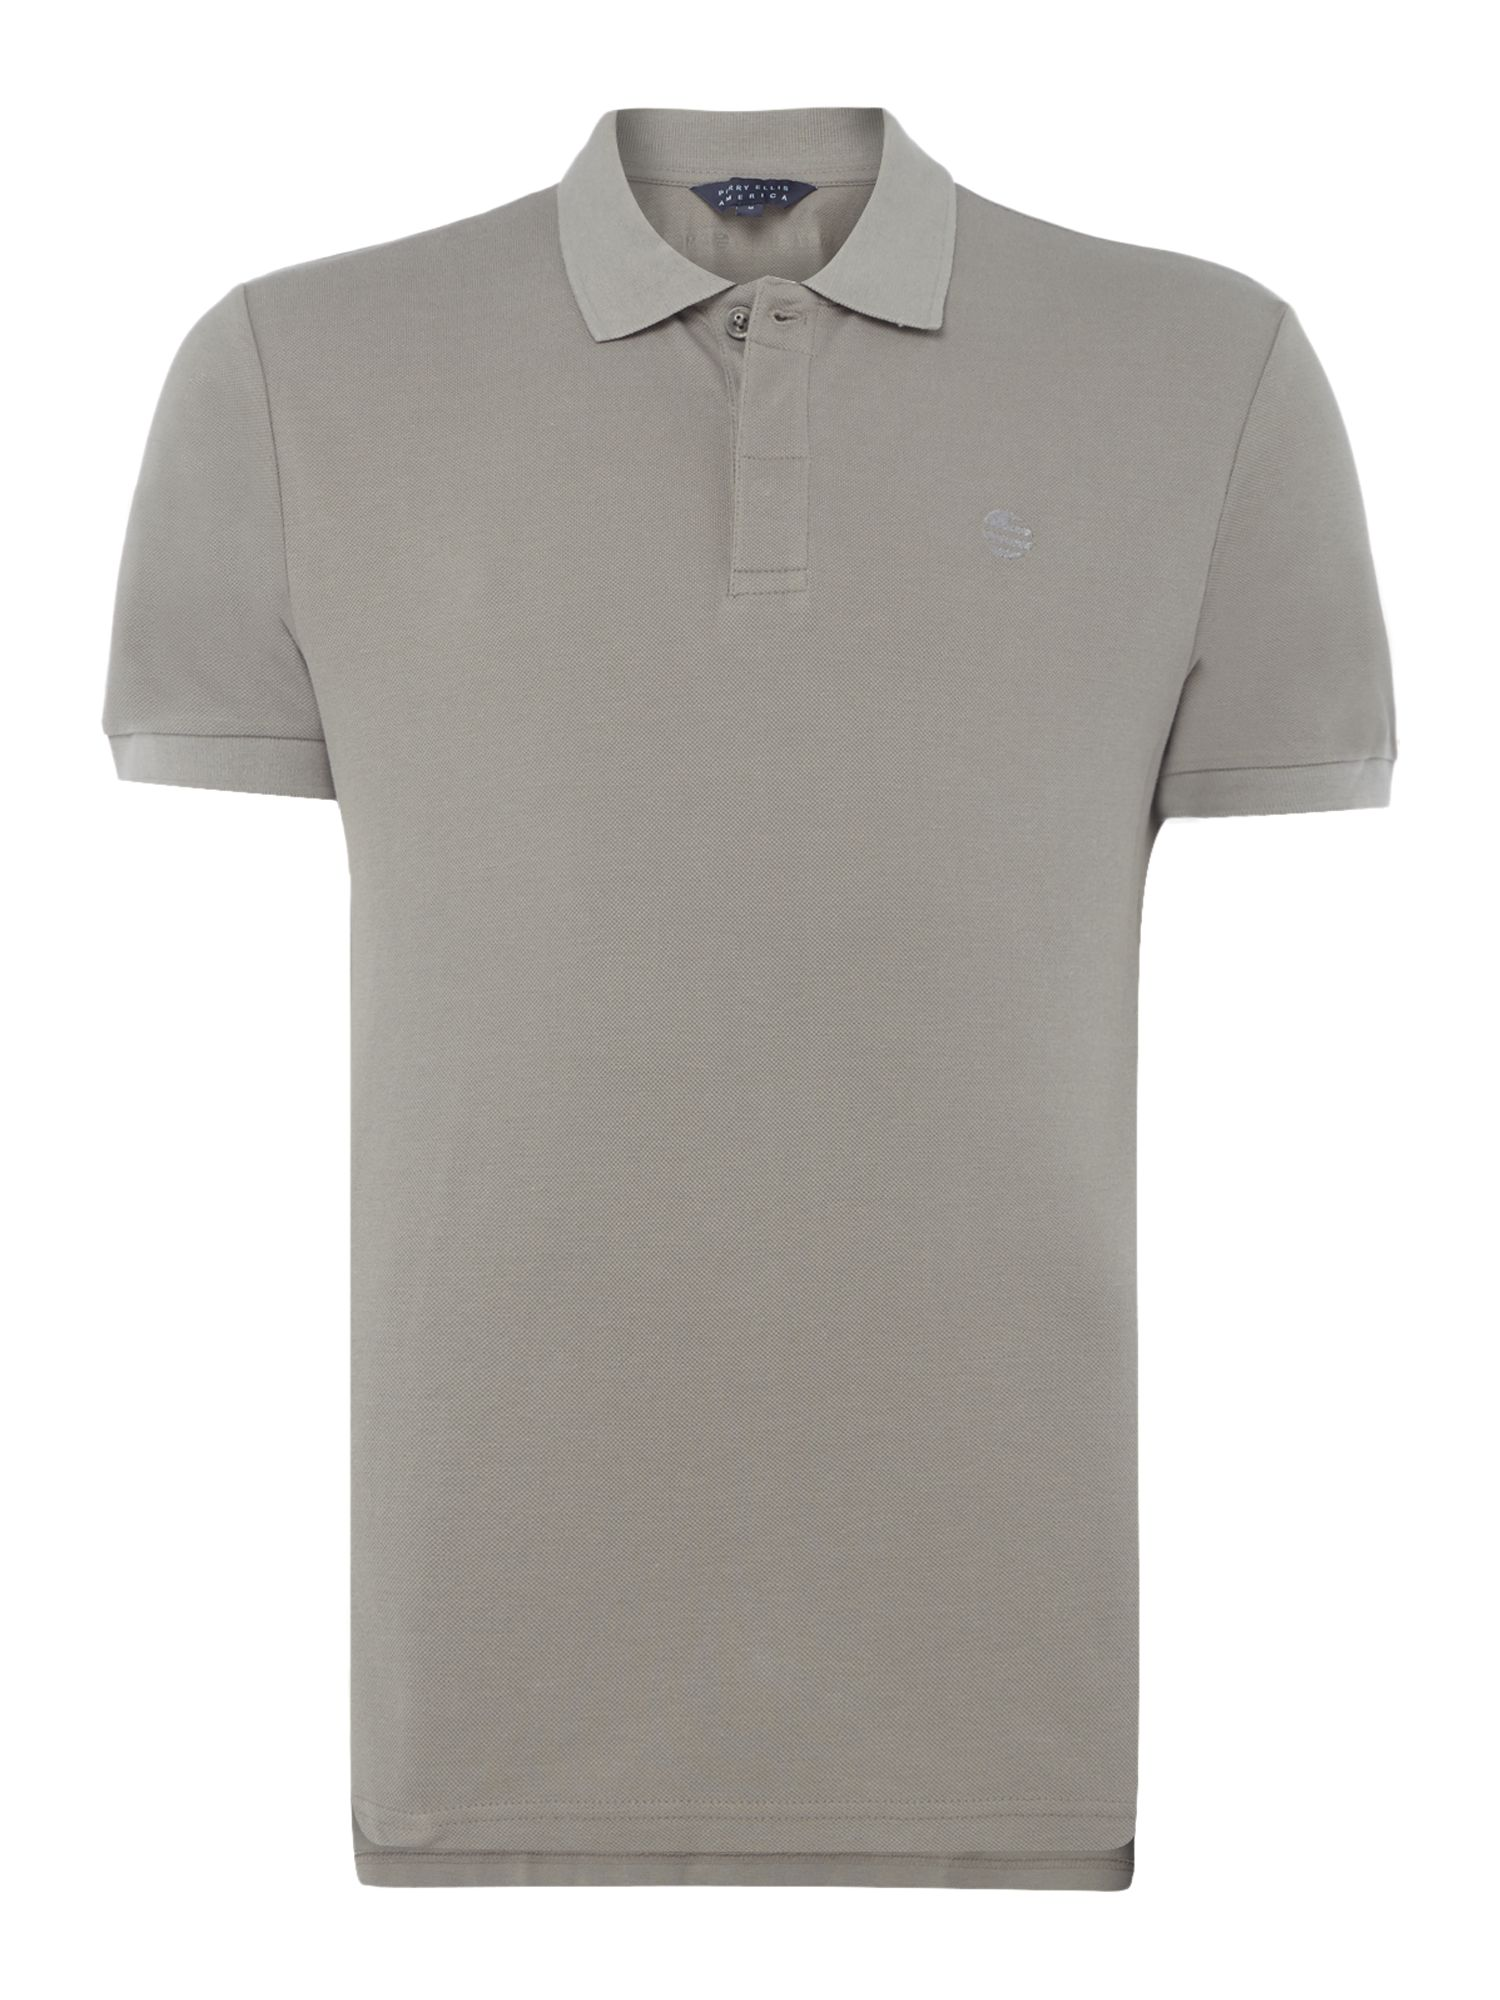 Men's Perry Ellis America Archive Fit Short-Sleeve Polo-Shirt, Grey